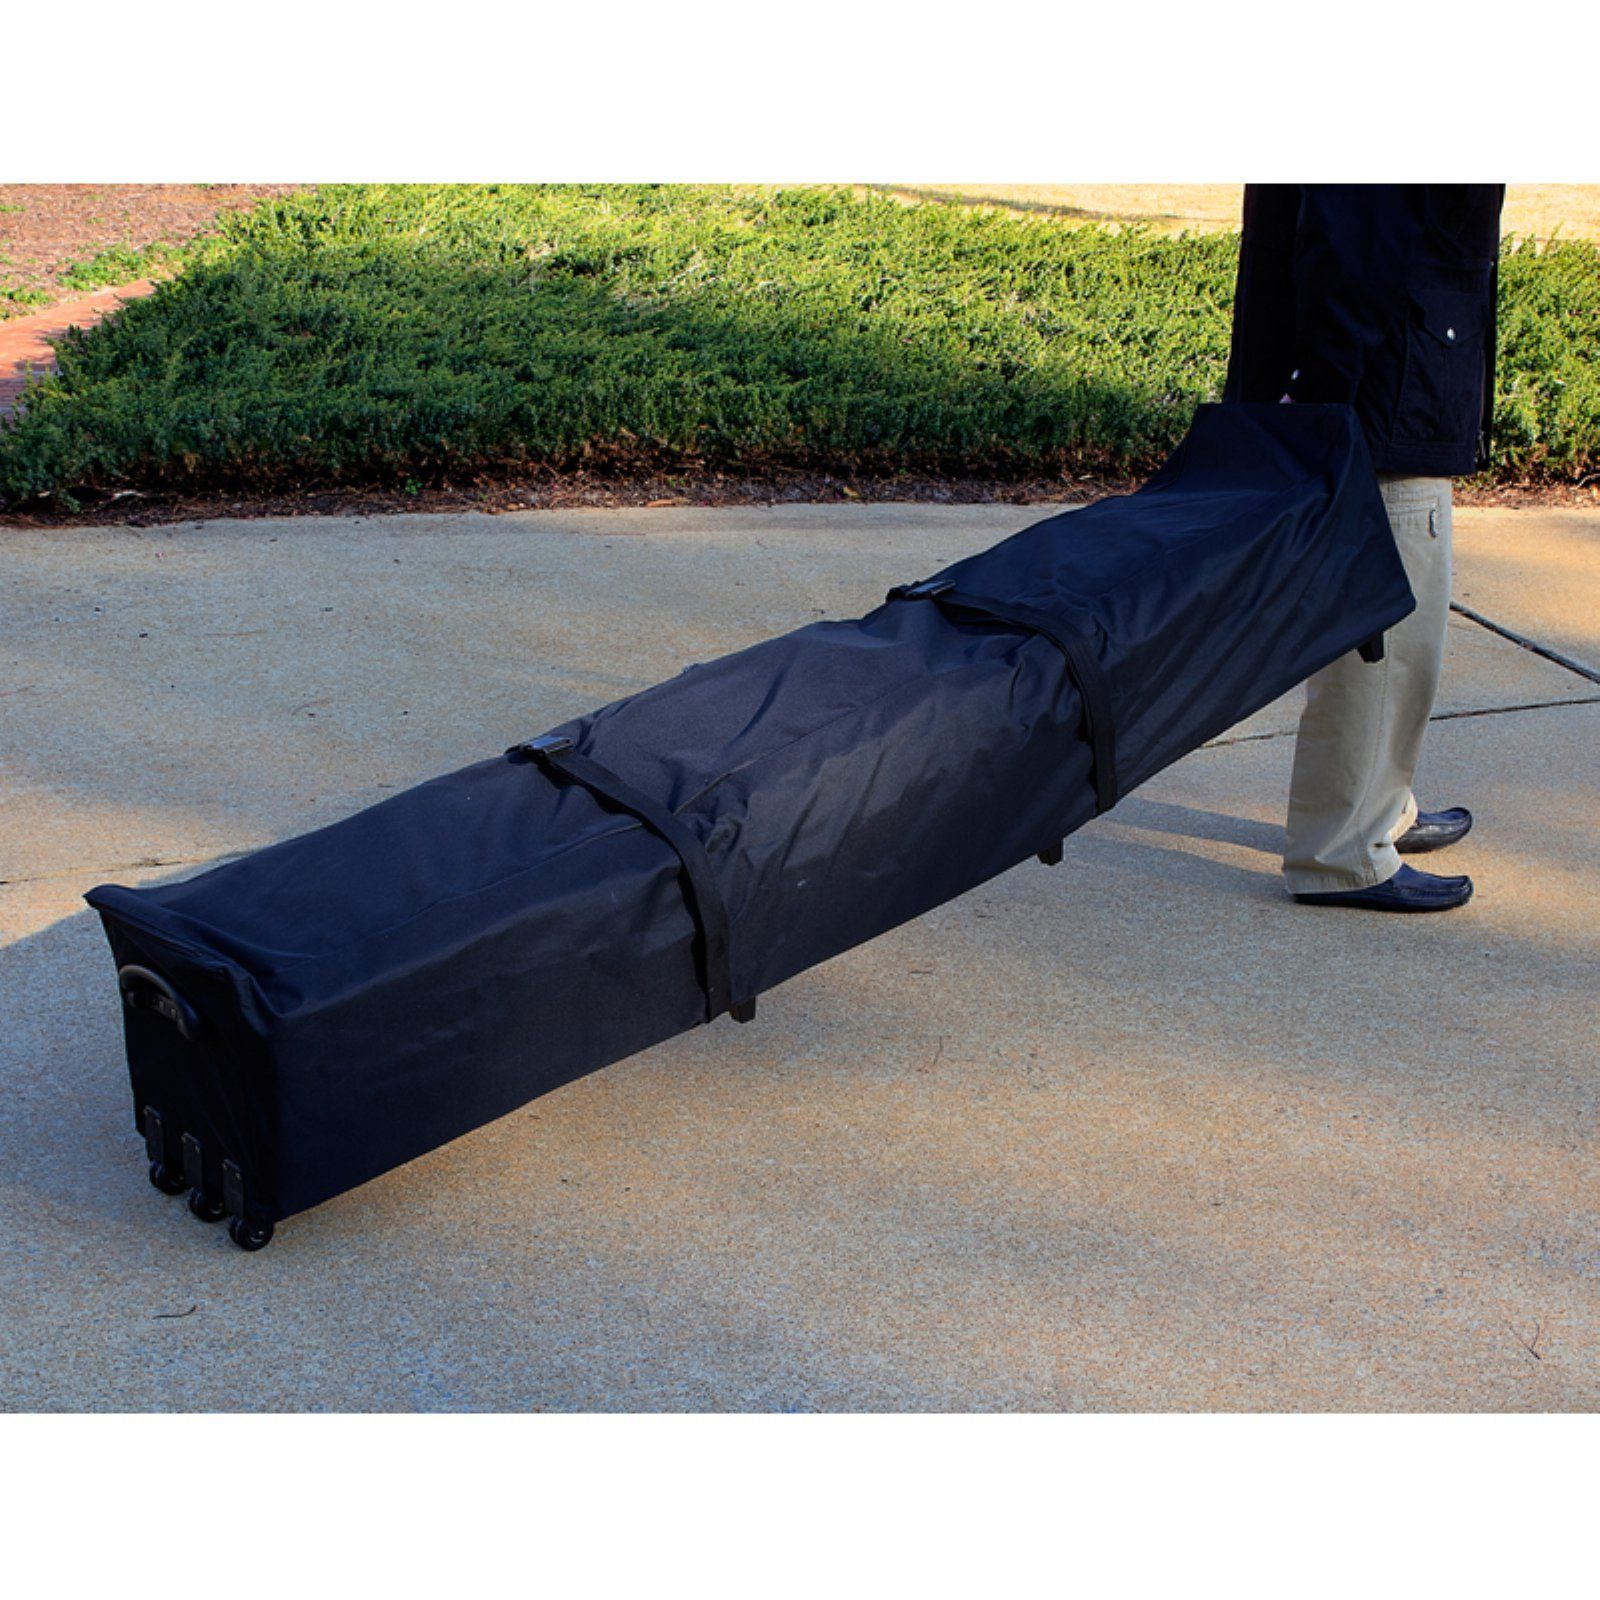 King Canopy 80 in. Canopy Roller Bag Gazebo pergola